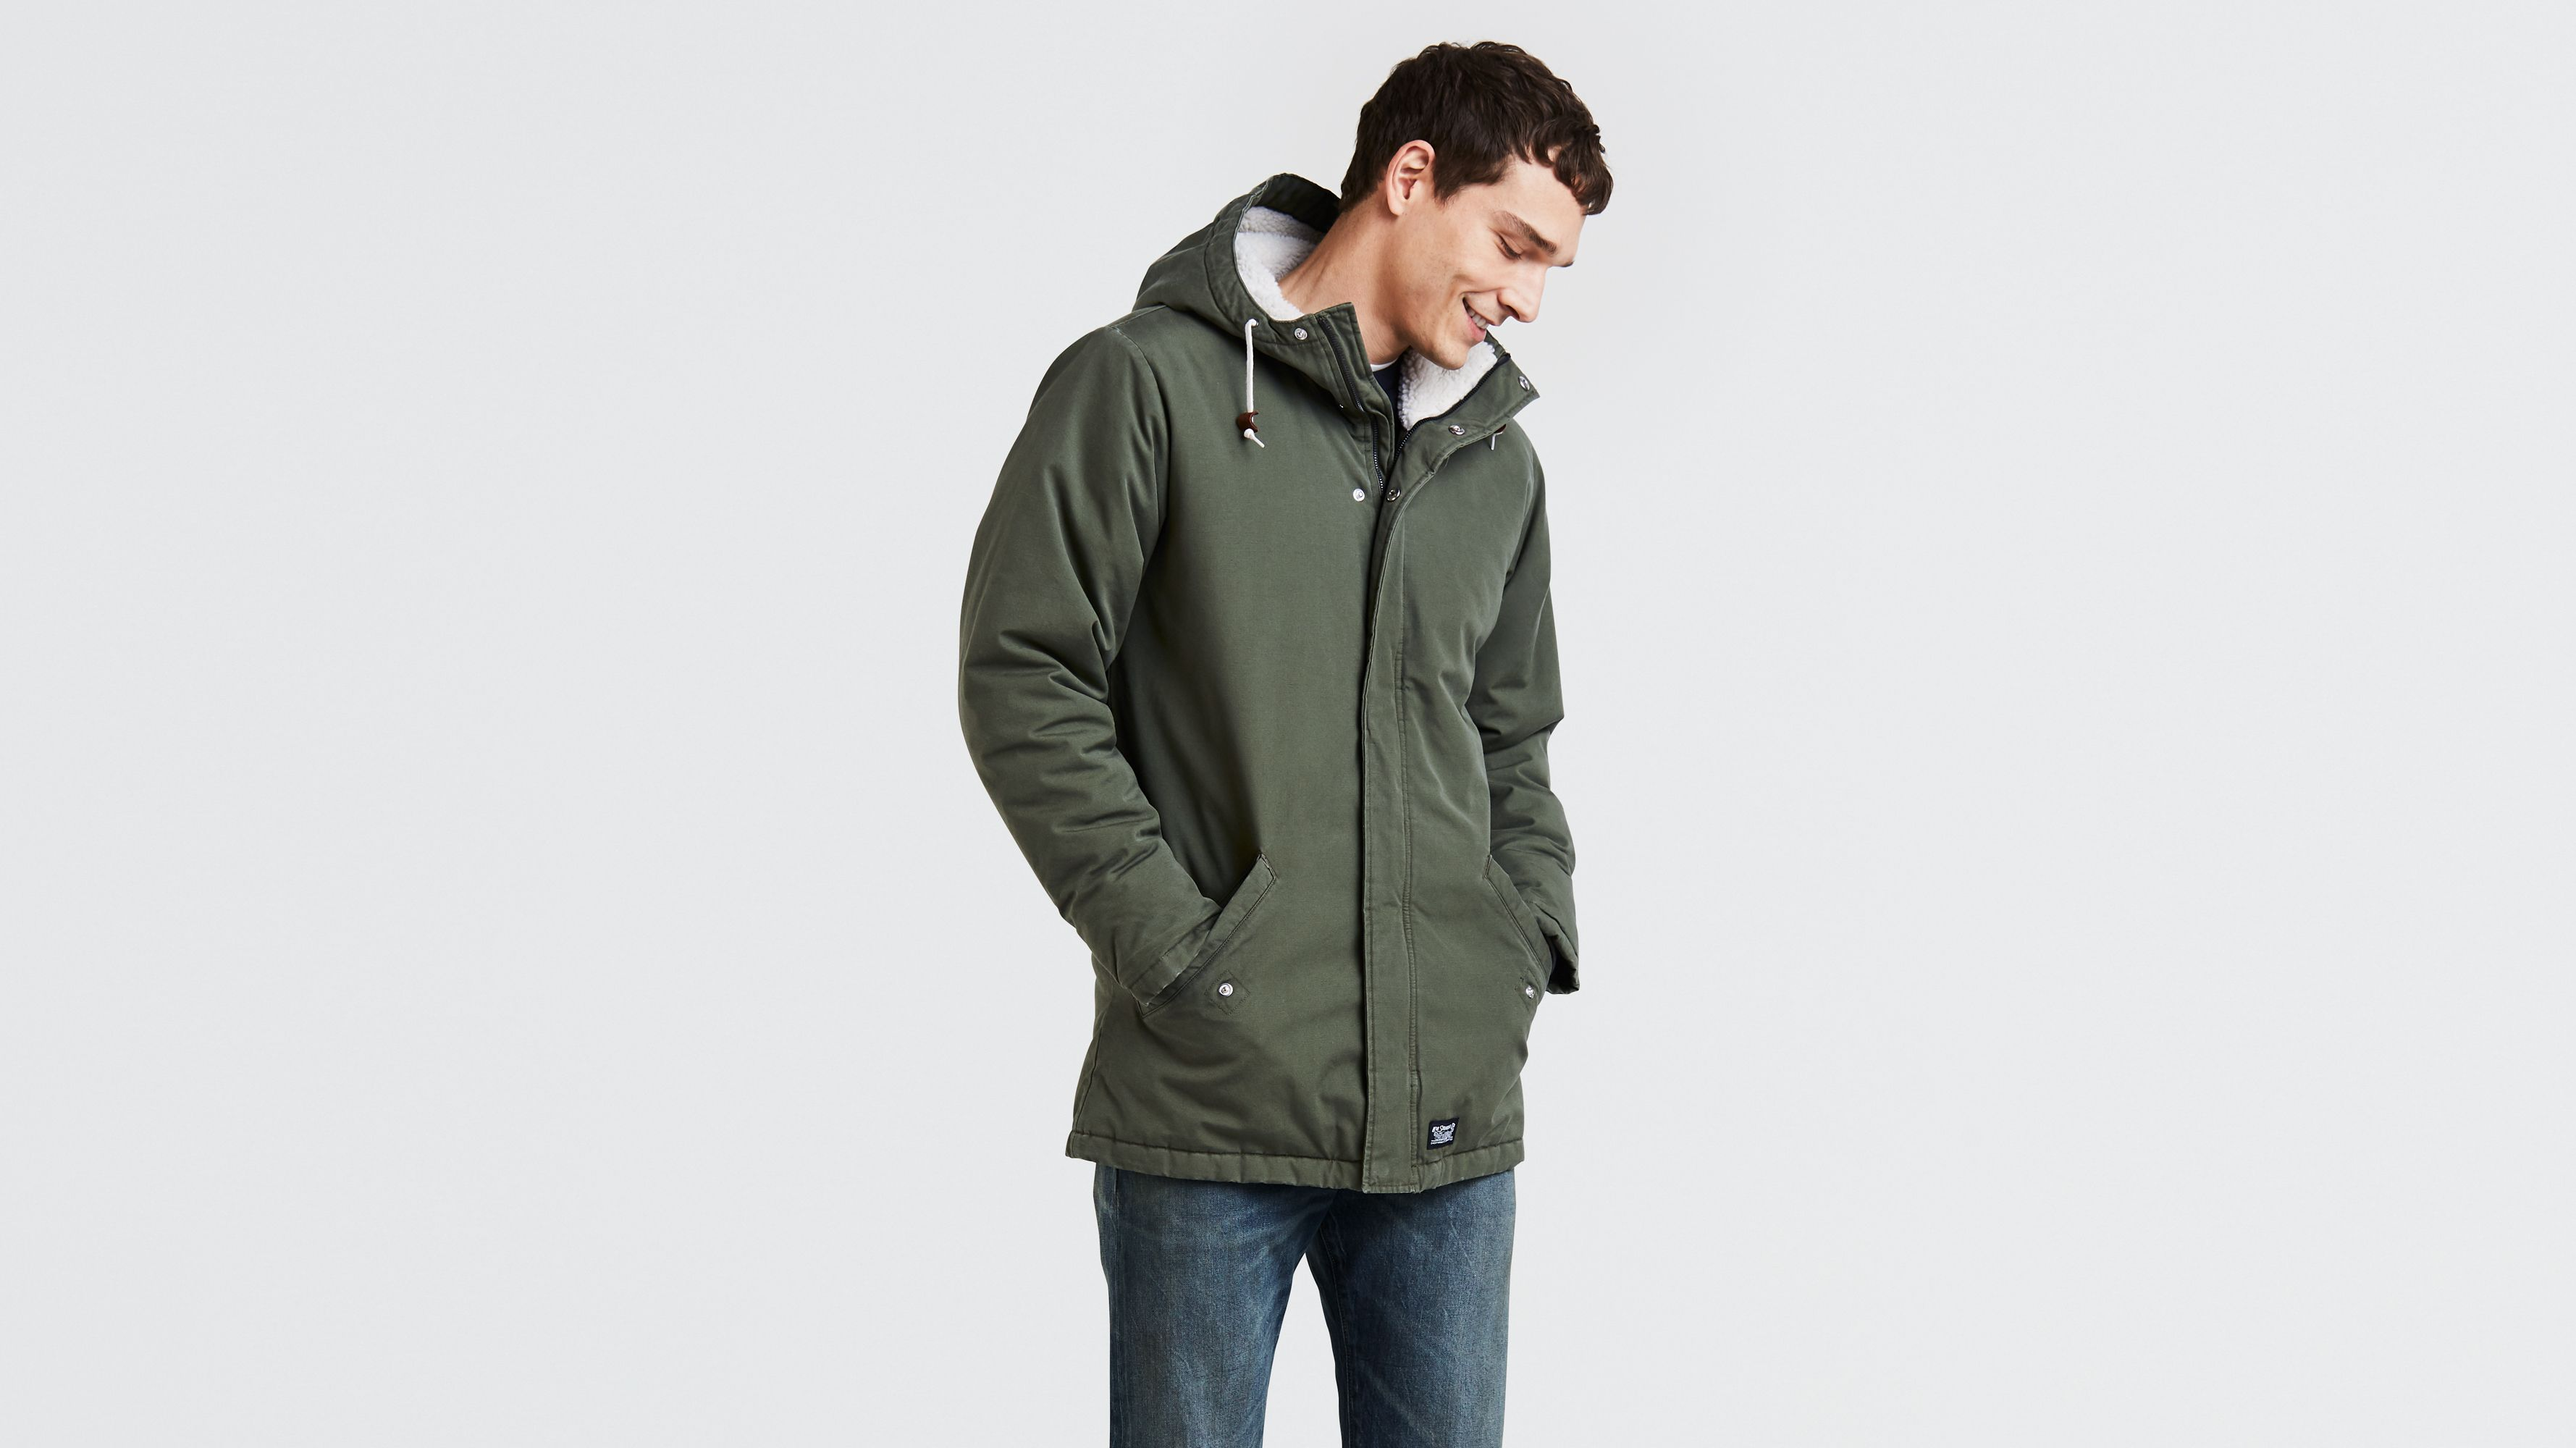 Jackets amp; For Men's Denim Men Coats Jackets Levi's 15wIqRI